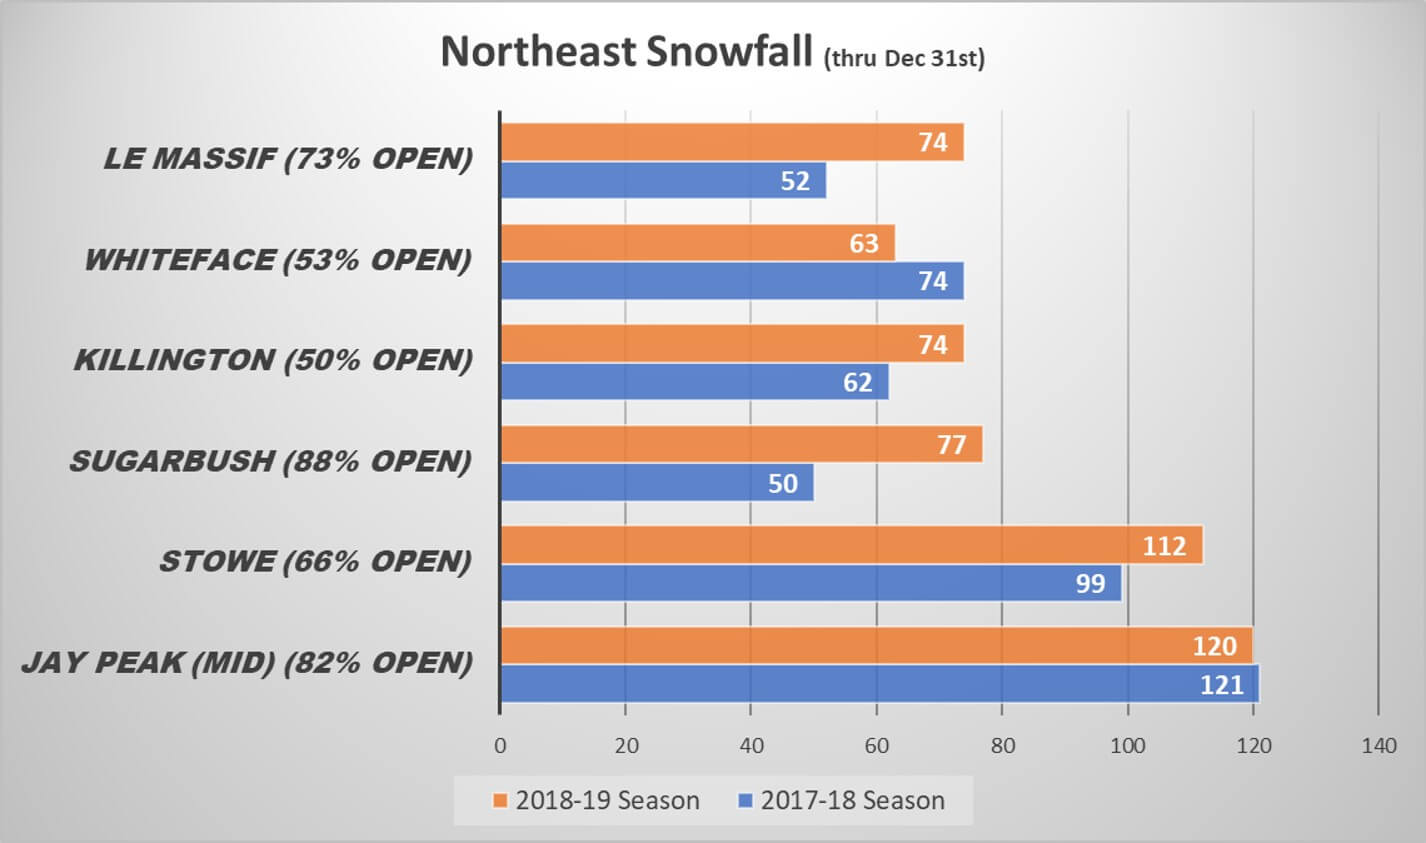 2018-19 Northeast US Snowfall Comparison